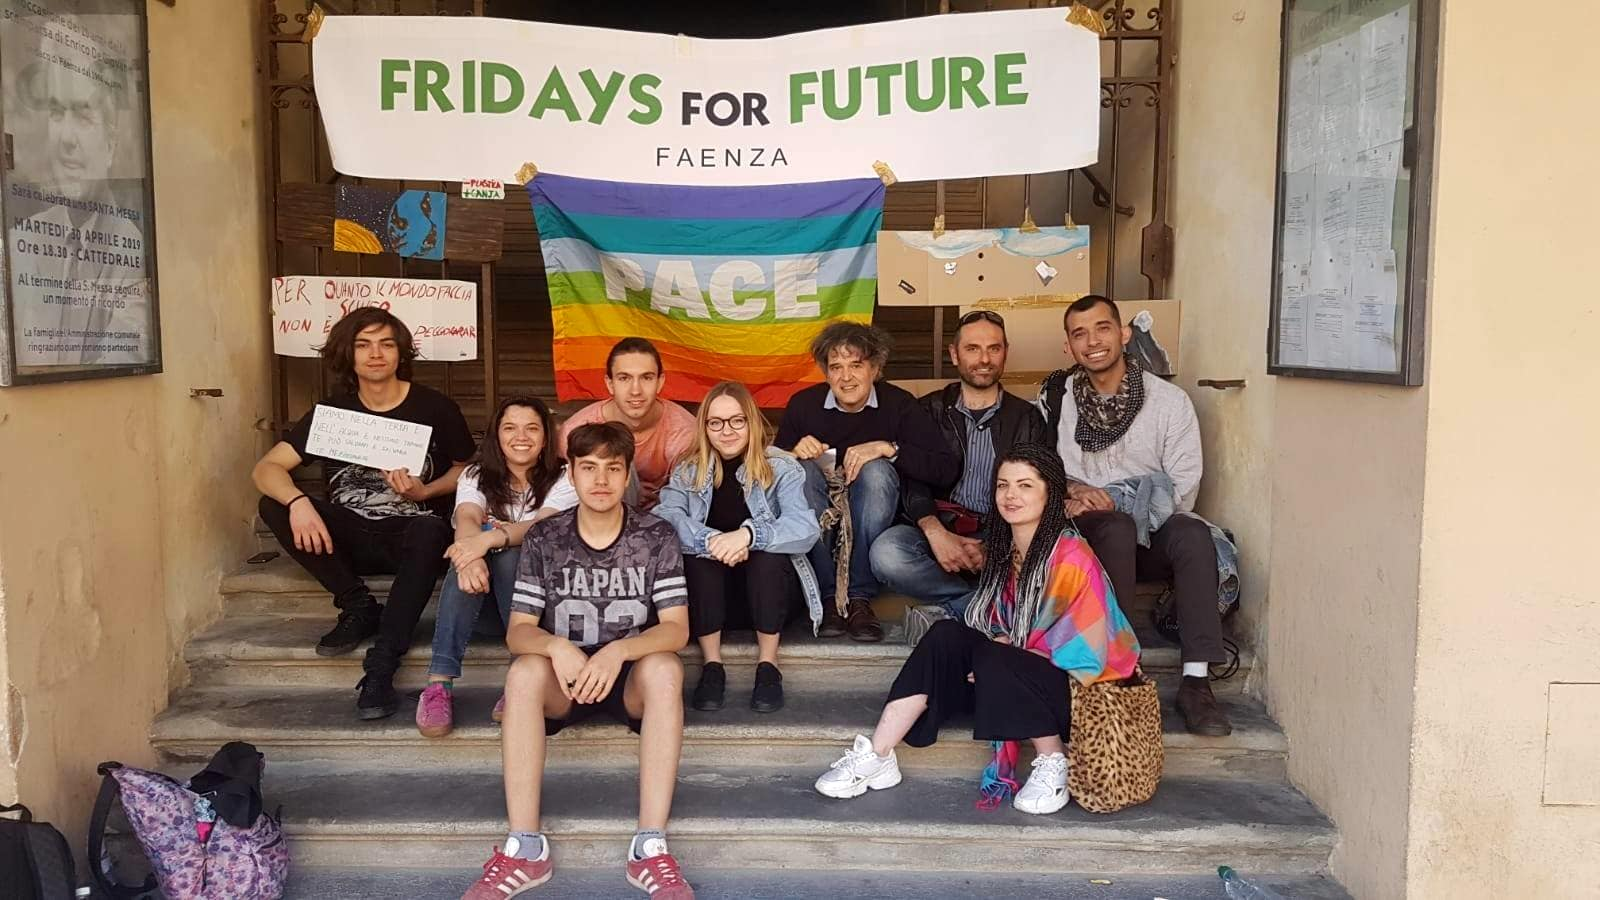 fridays-for-future-faenza-2